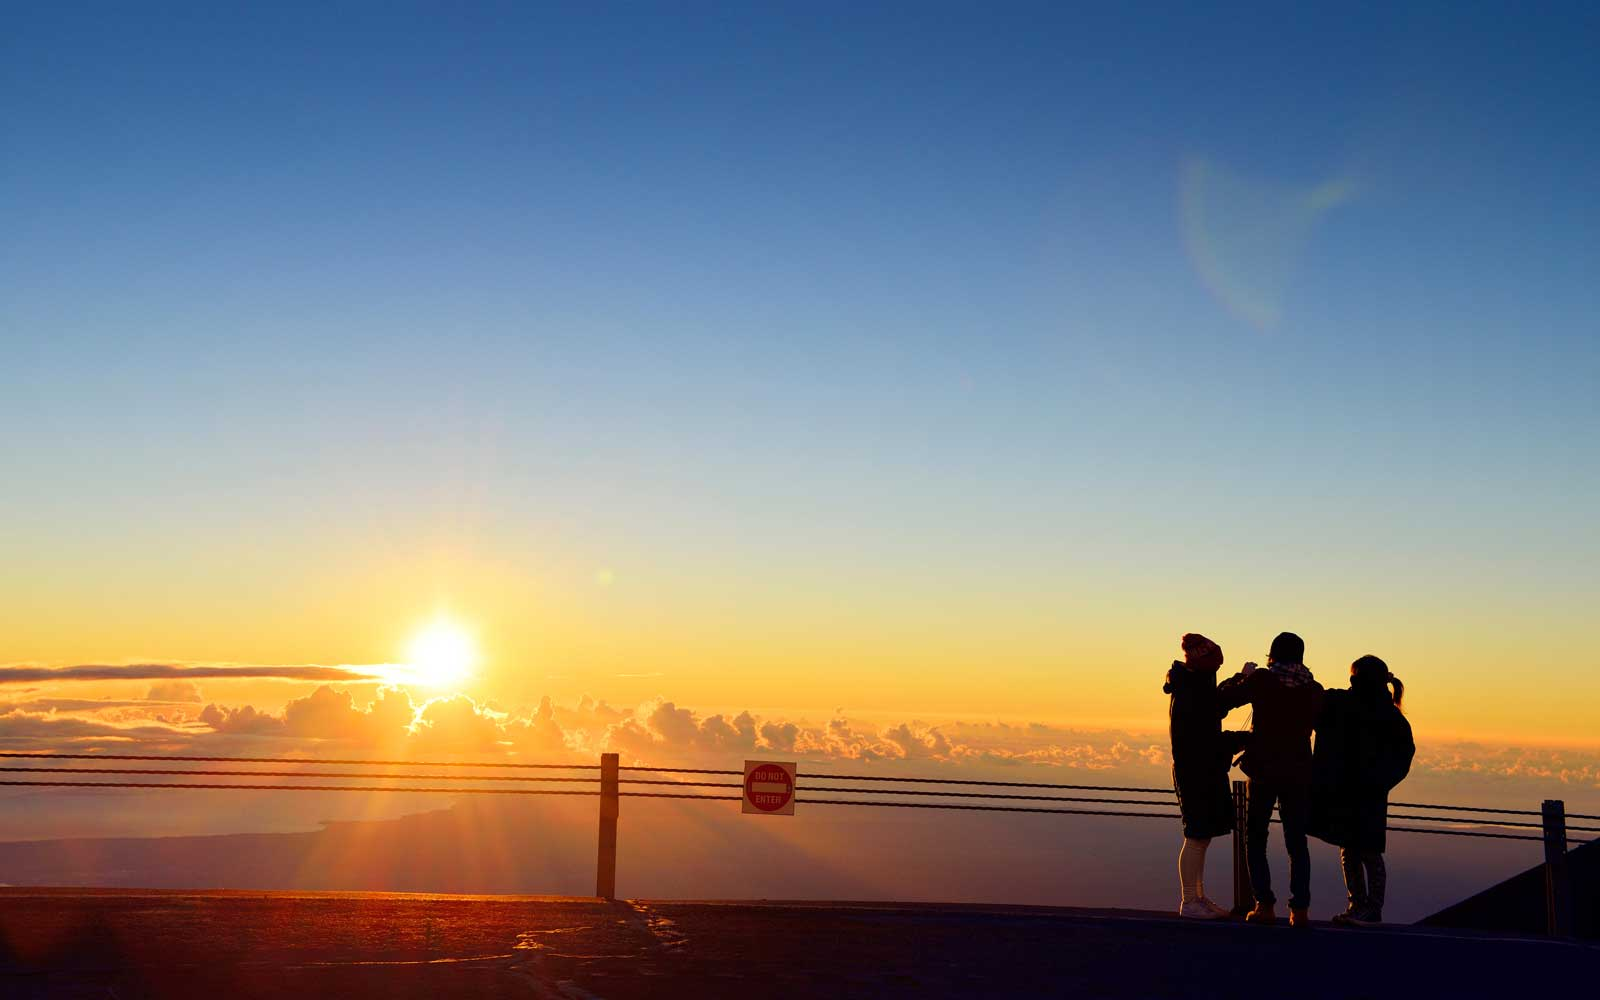 USA, Hawaii, Big Island, Mauna Kea, three tourists watching sunrise